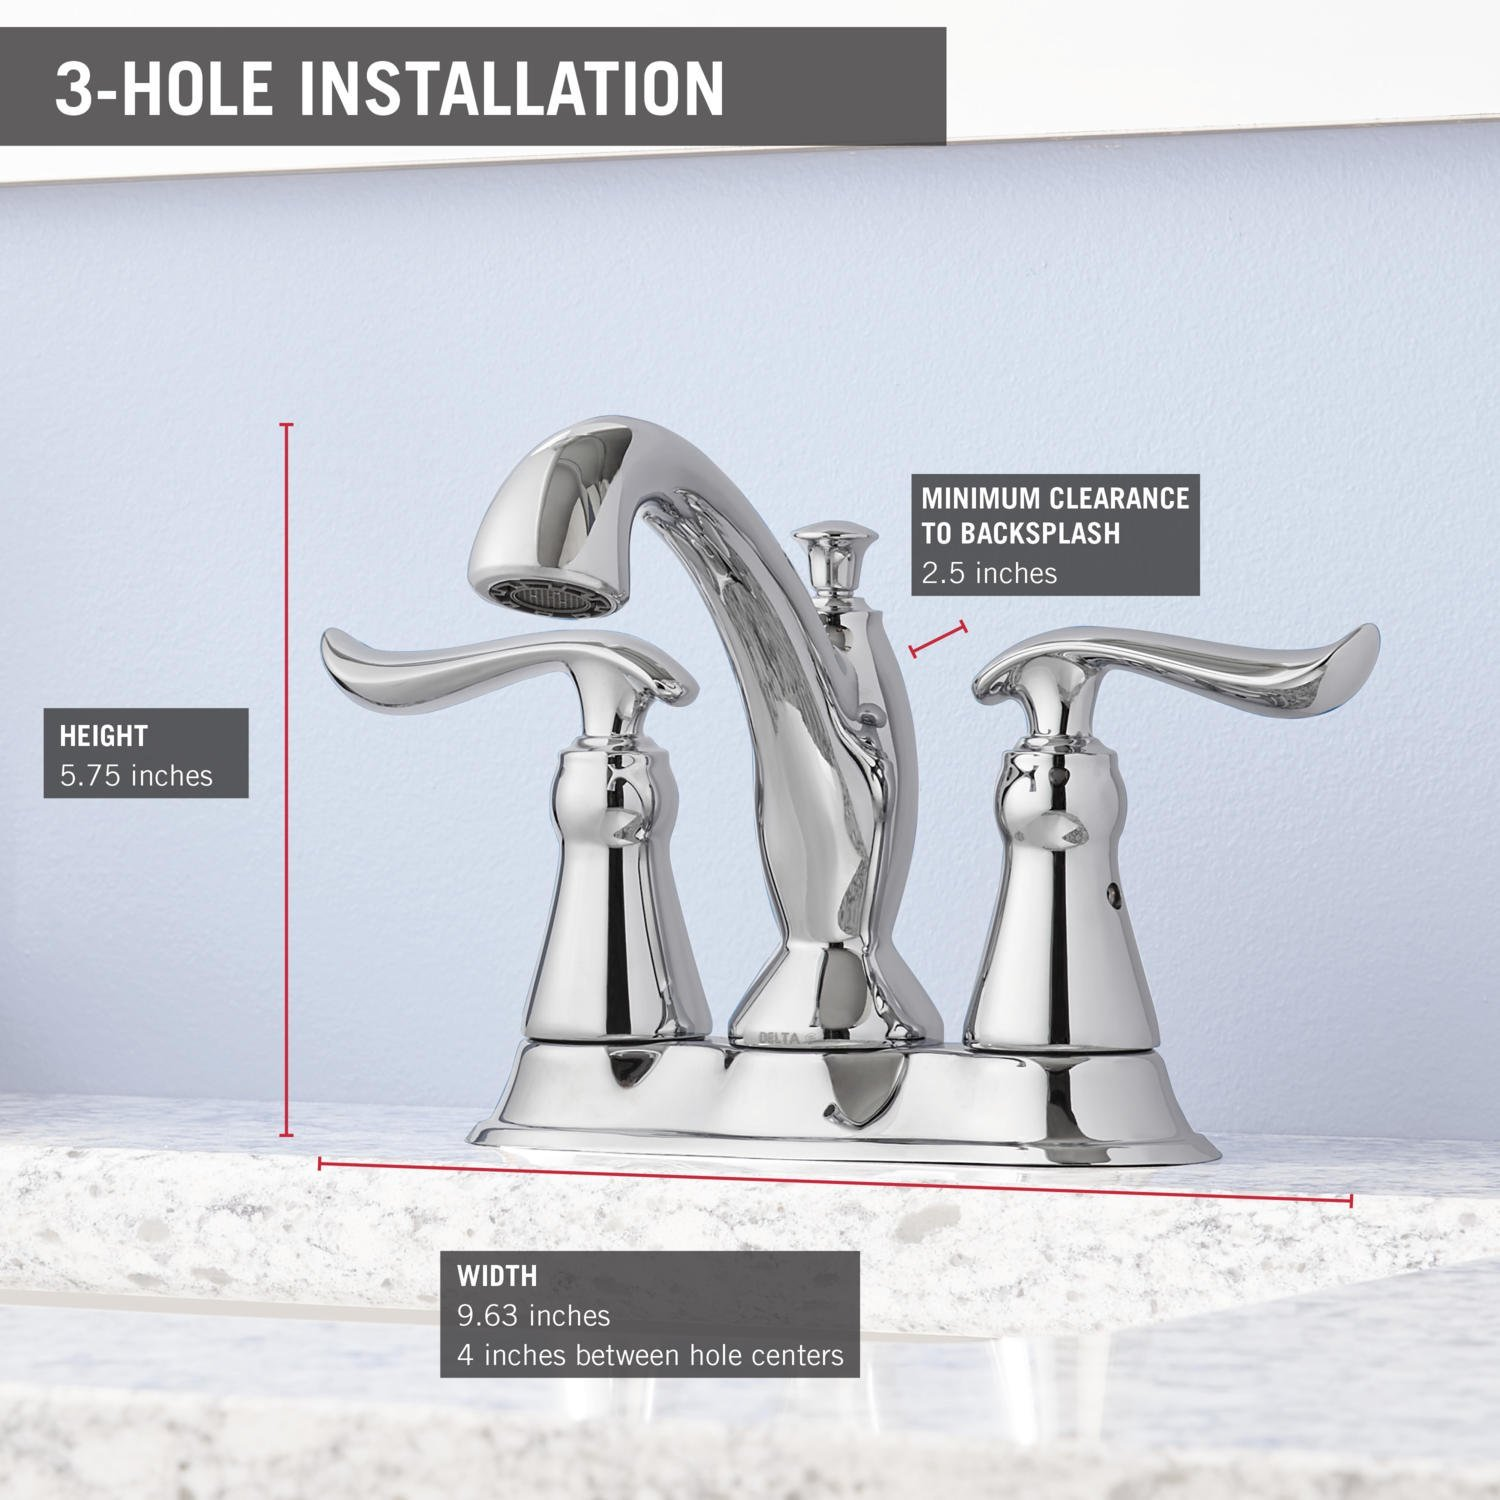 Delta Linden 2-Handle Centerset Bathroom Faucet with Diamond Seal Technology and Metal Drain Assembly, Chrome 2594-MPU-DST by DELTA FAUCET (Image #4)